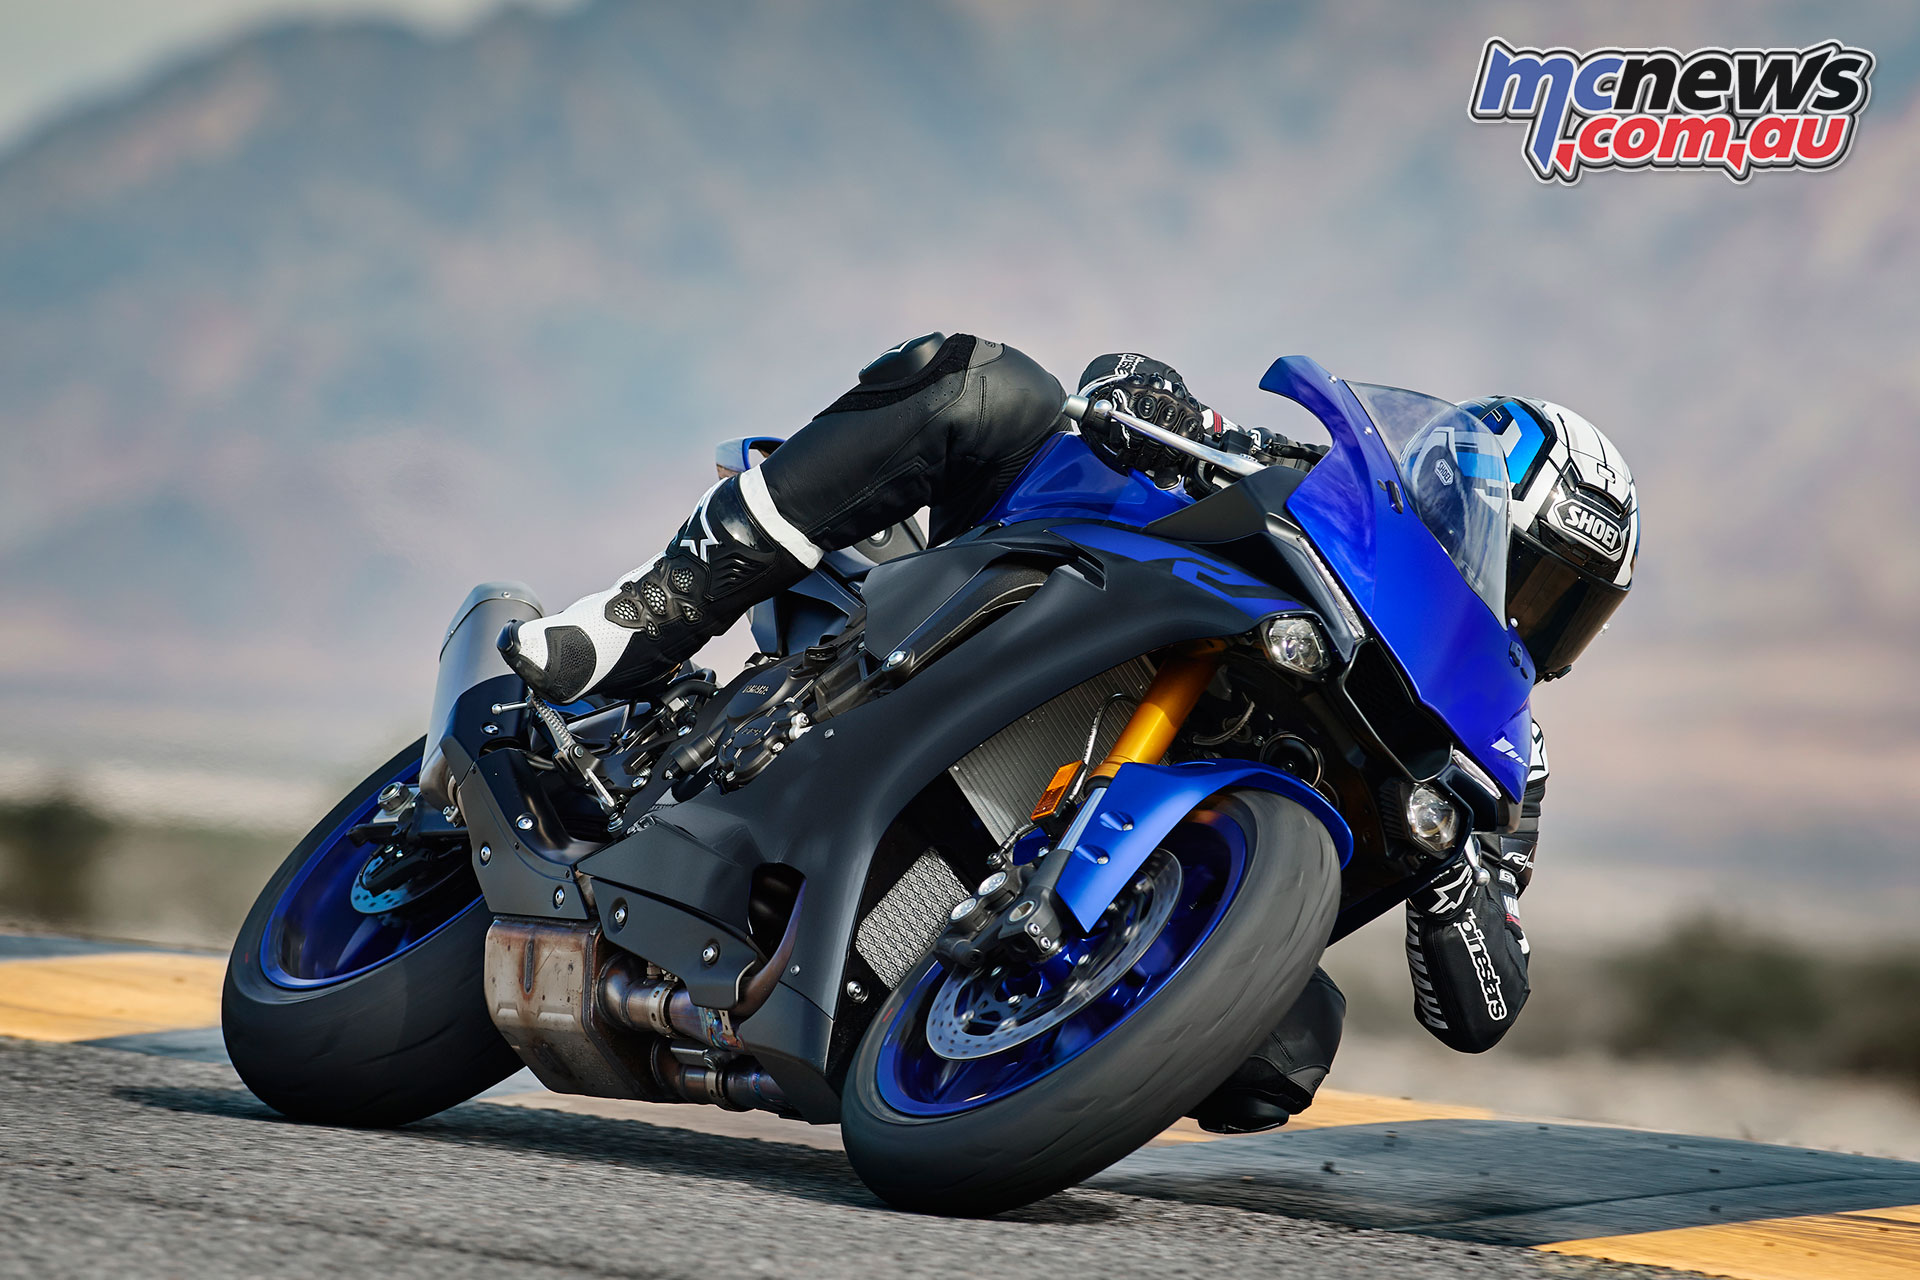 2019 Yamaha Yzf R1 Arrives In Dealers 23 999 Orc Mcnews Com Au